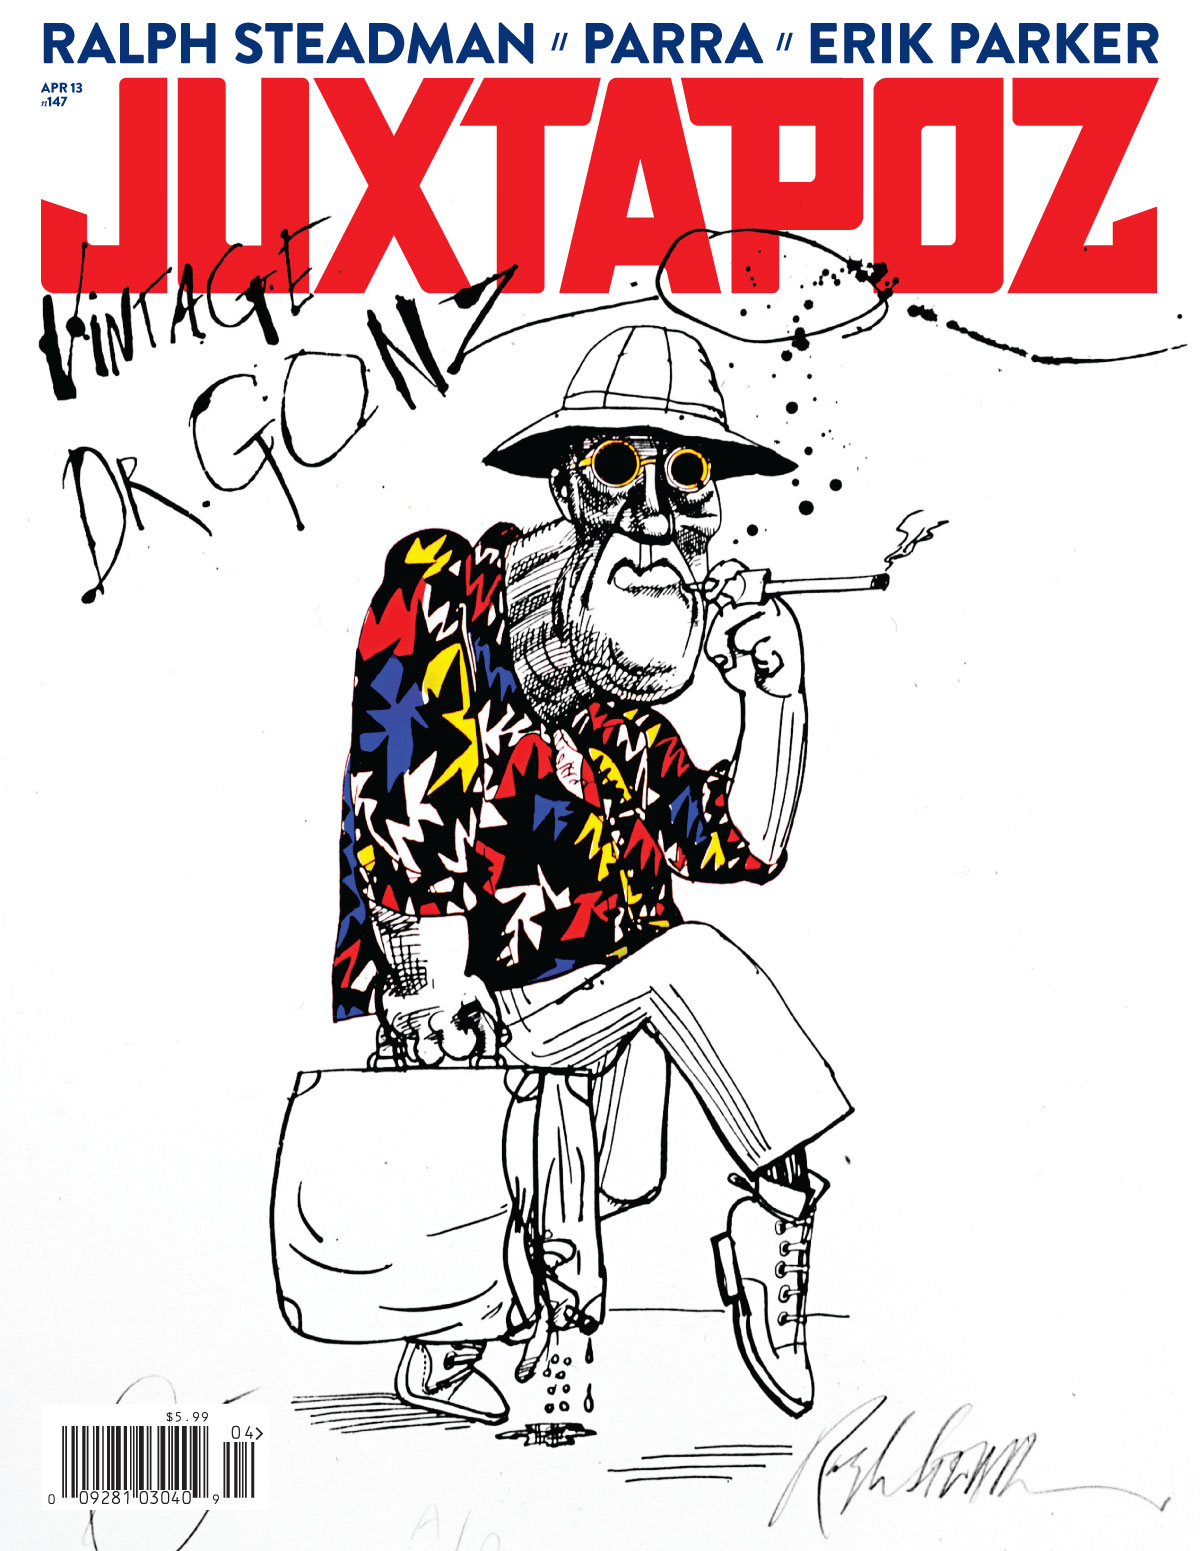 Issue Preview: April 2013 w/ Ralph Steadman, Erik Parker, Parra, and Hunter S Thompson: Cover.jpg